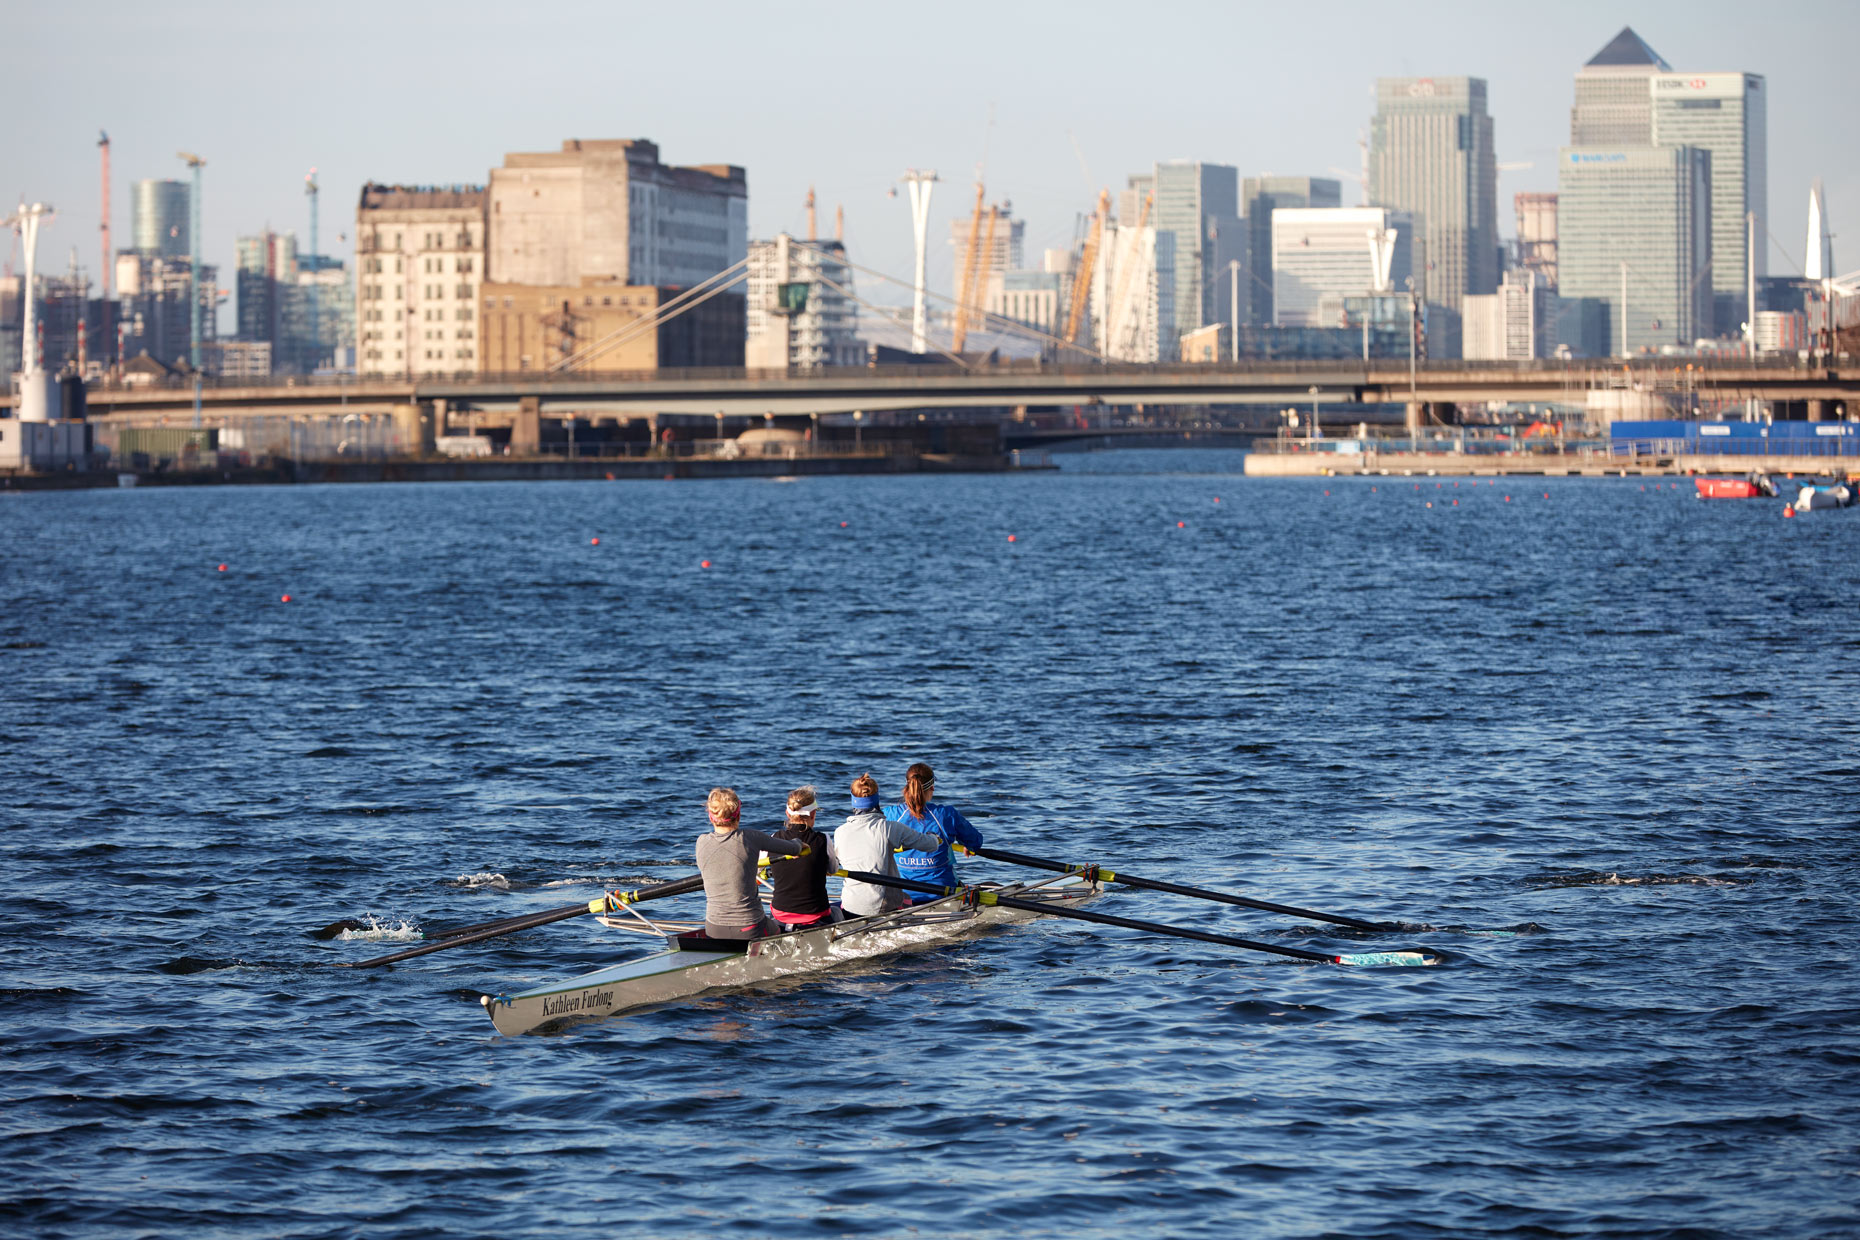 BMC_ROWING5